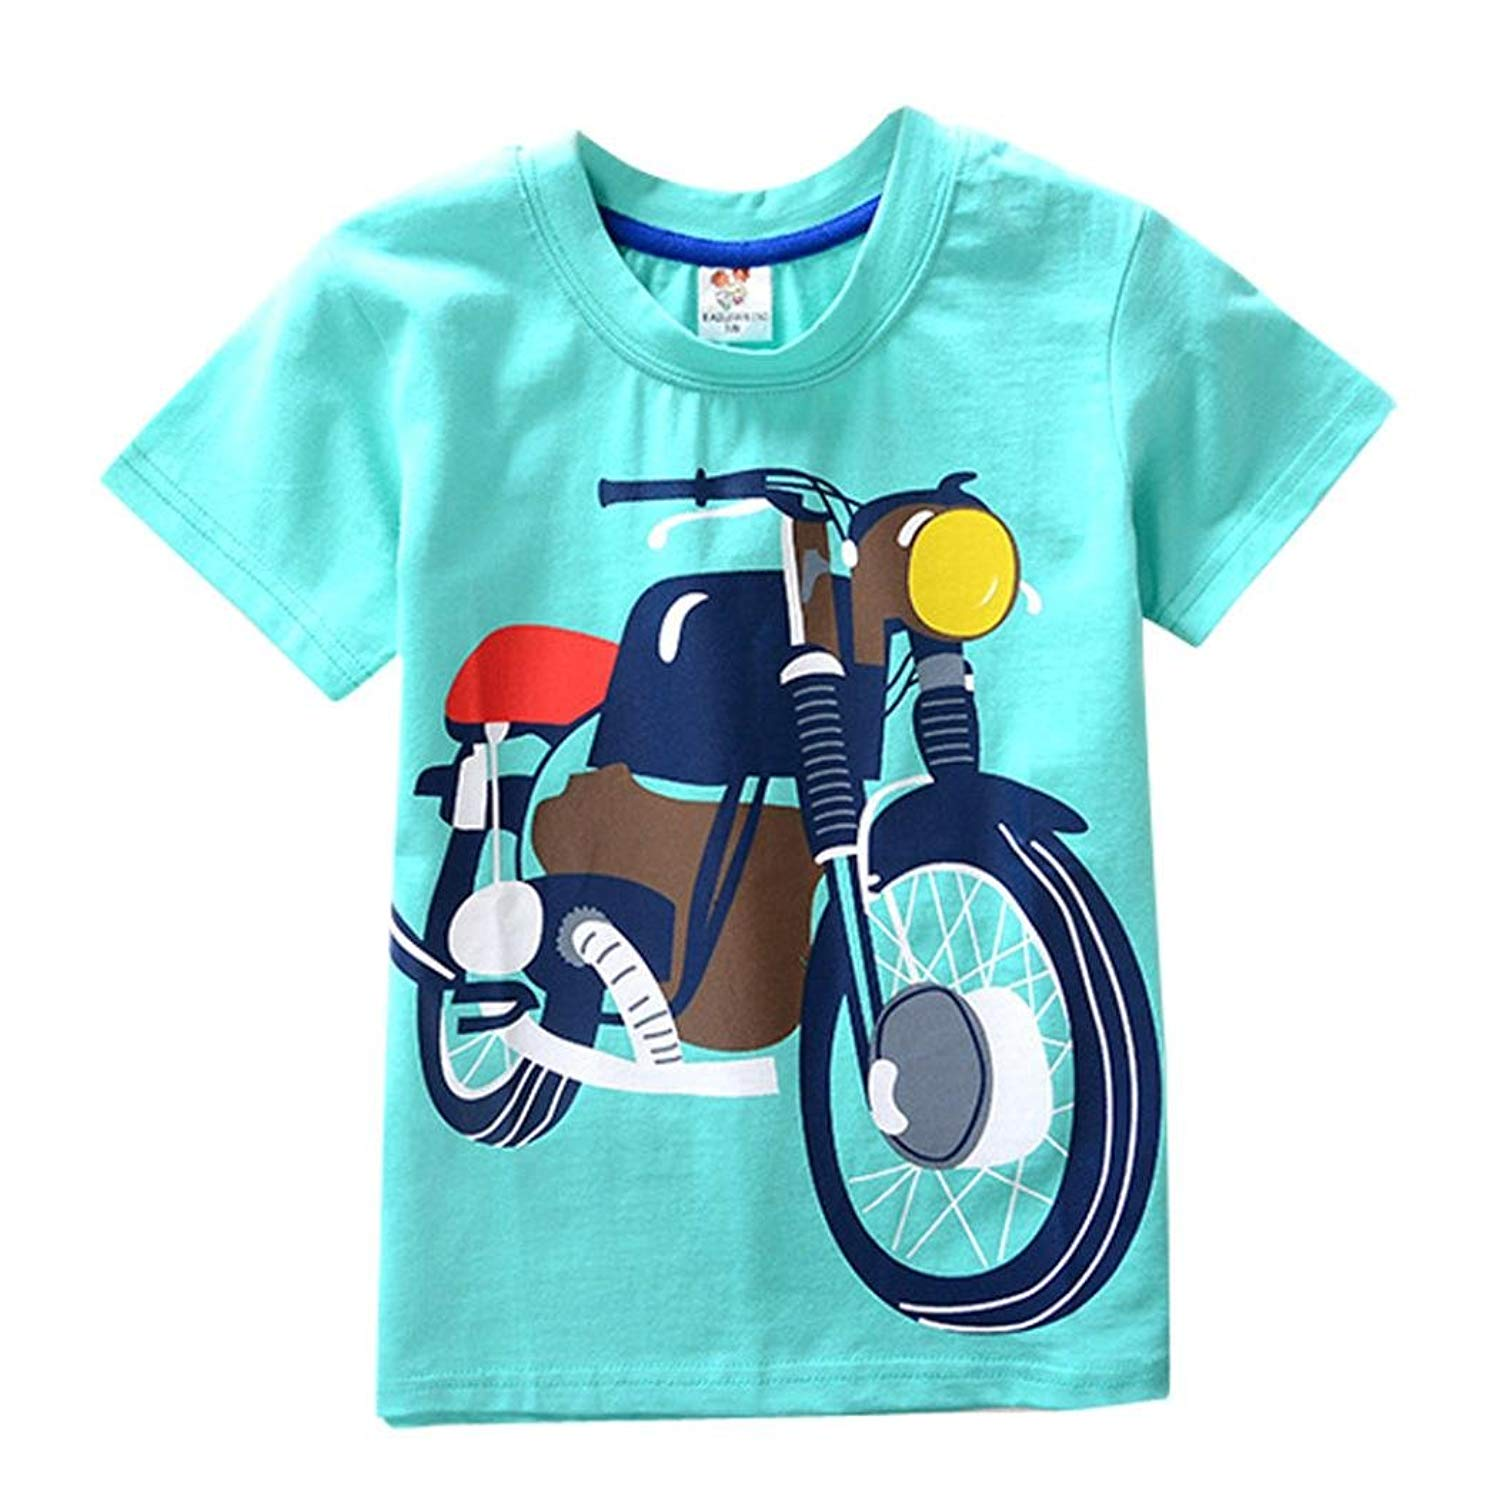 235b270cd0dca Get Quotations · Pollyhb Toddler Kids Baby Boys Girls Clothes Short Sleeve  Tops T-Shirt Blous